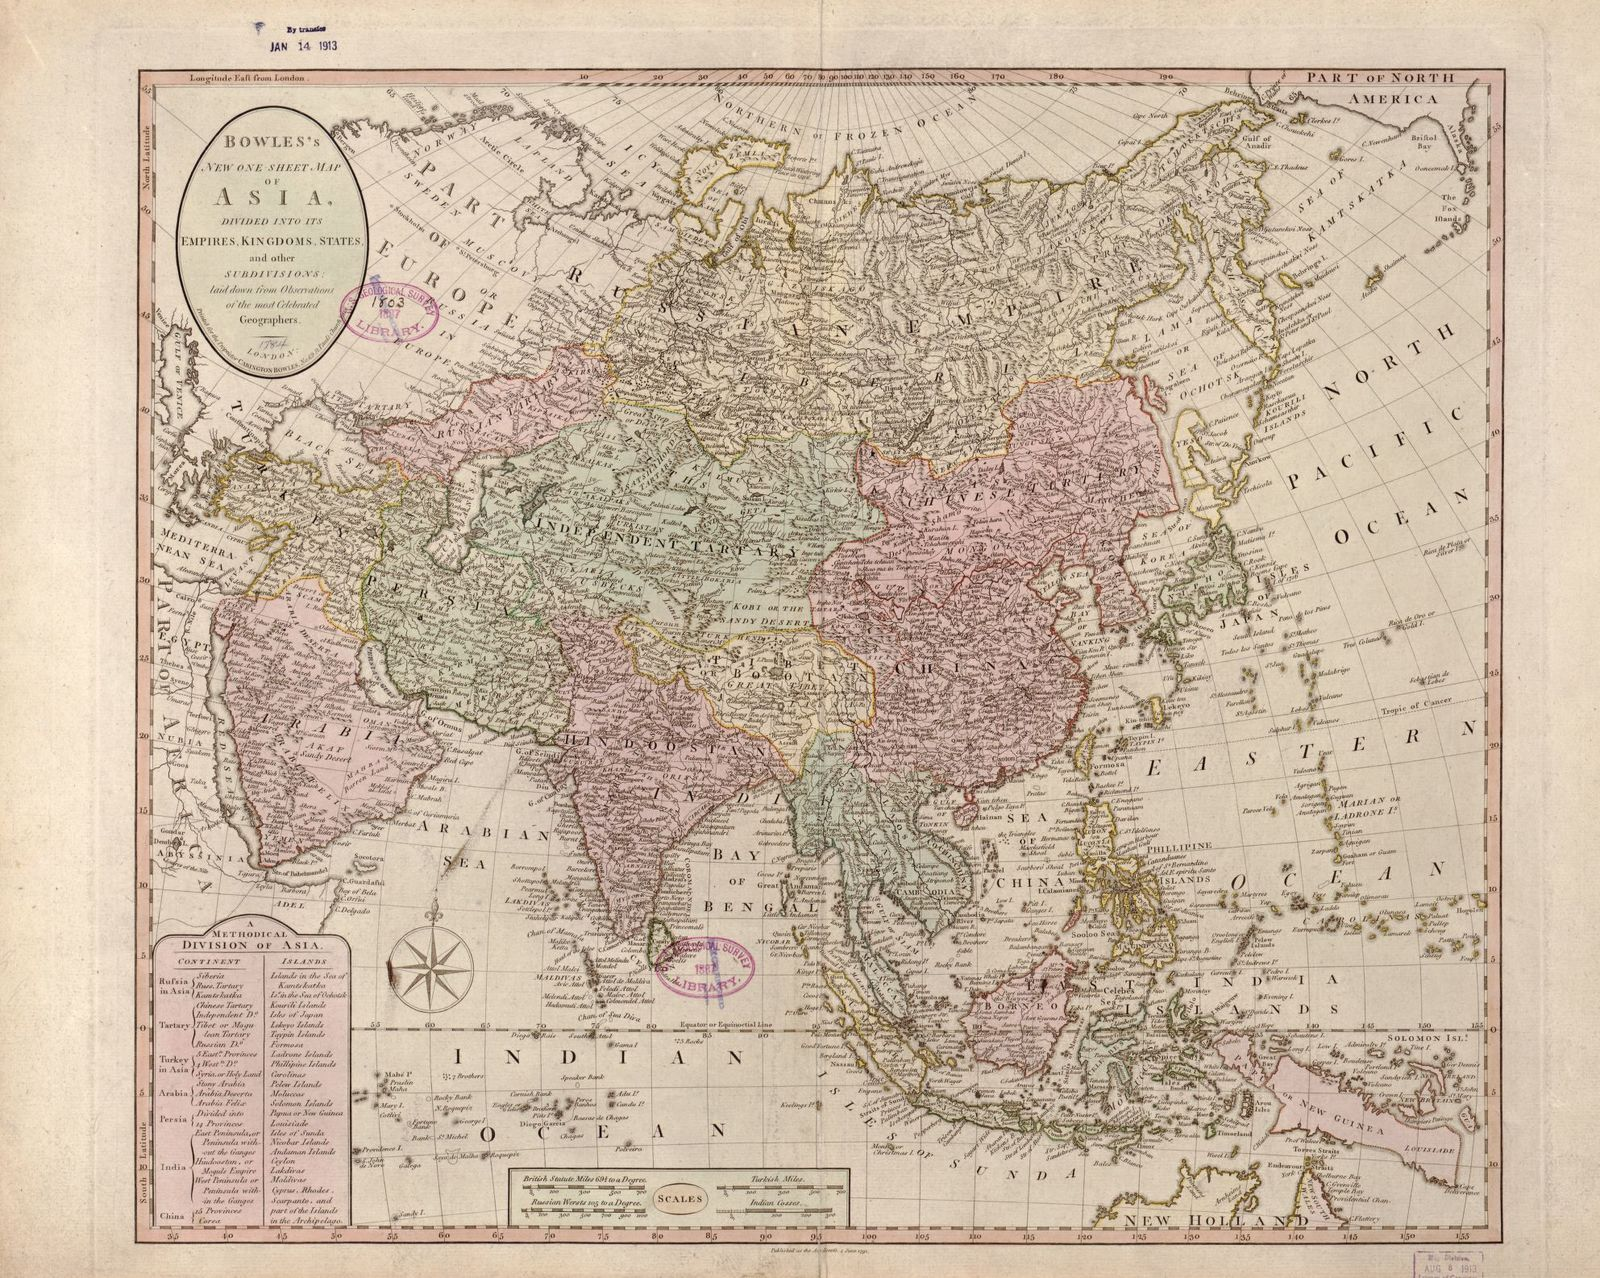 Bowles's new one-sheet map of Asia, divided into its empires, kingdoms, states, and other subdivisions  : laid down from observations of the most celebrated geographers.